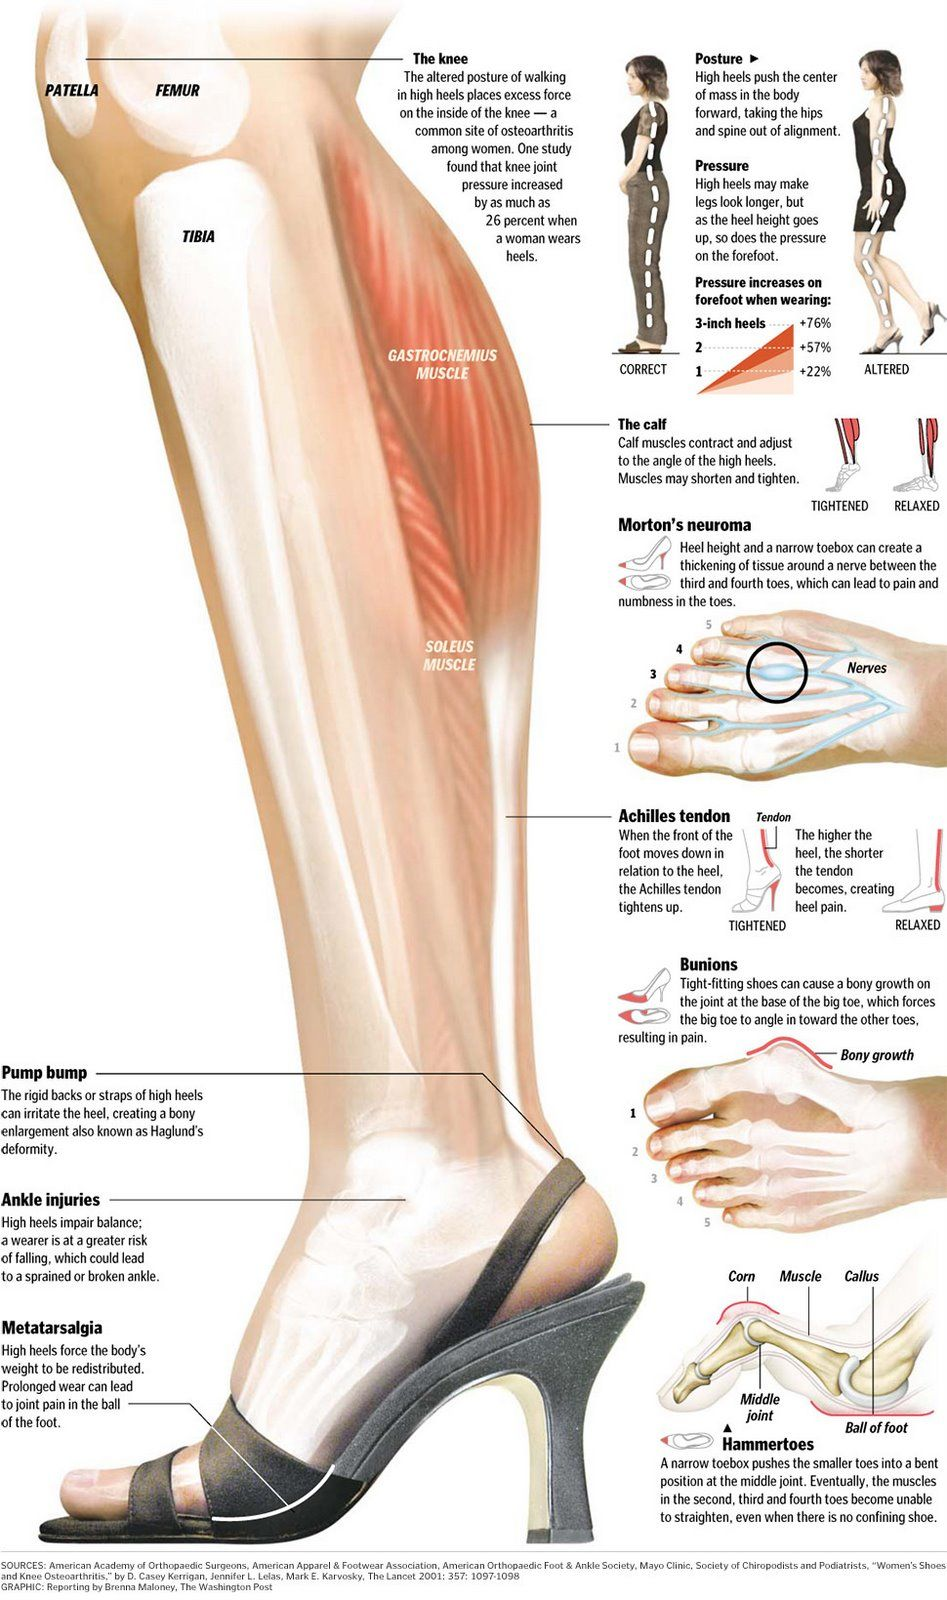 The Dangers of Wearing High Heeled Shoes | Pinterest | Foot pain ...